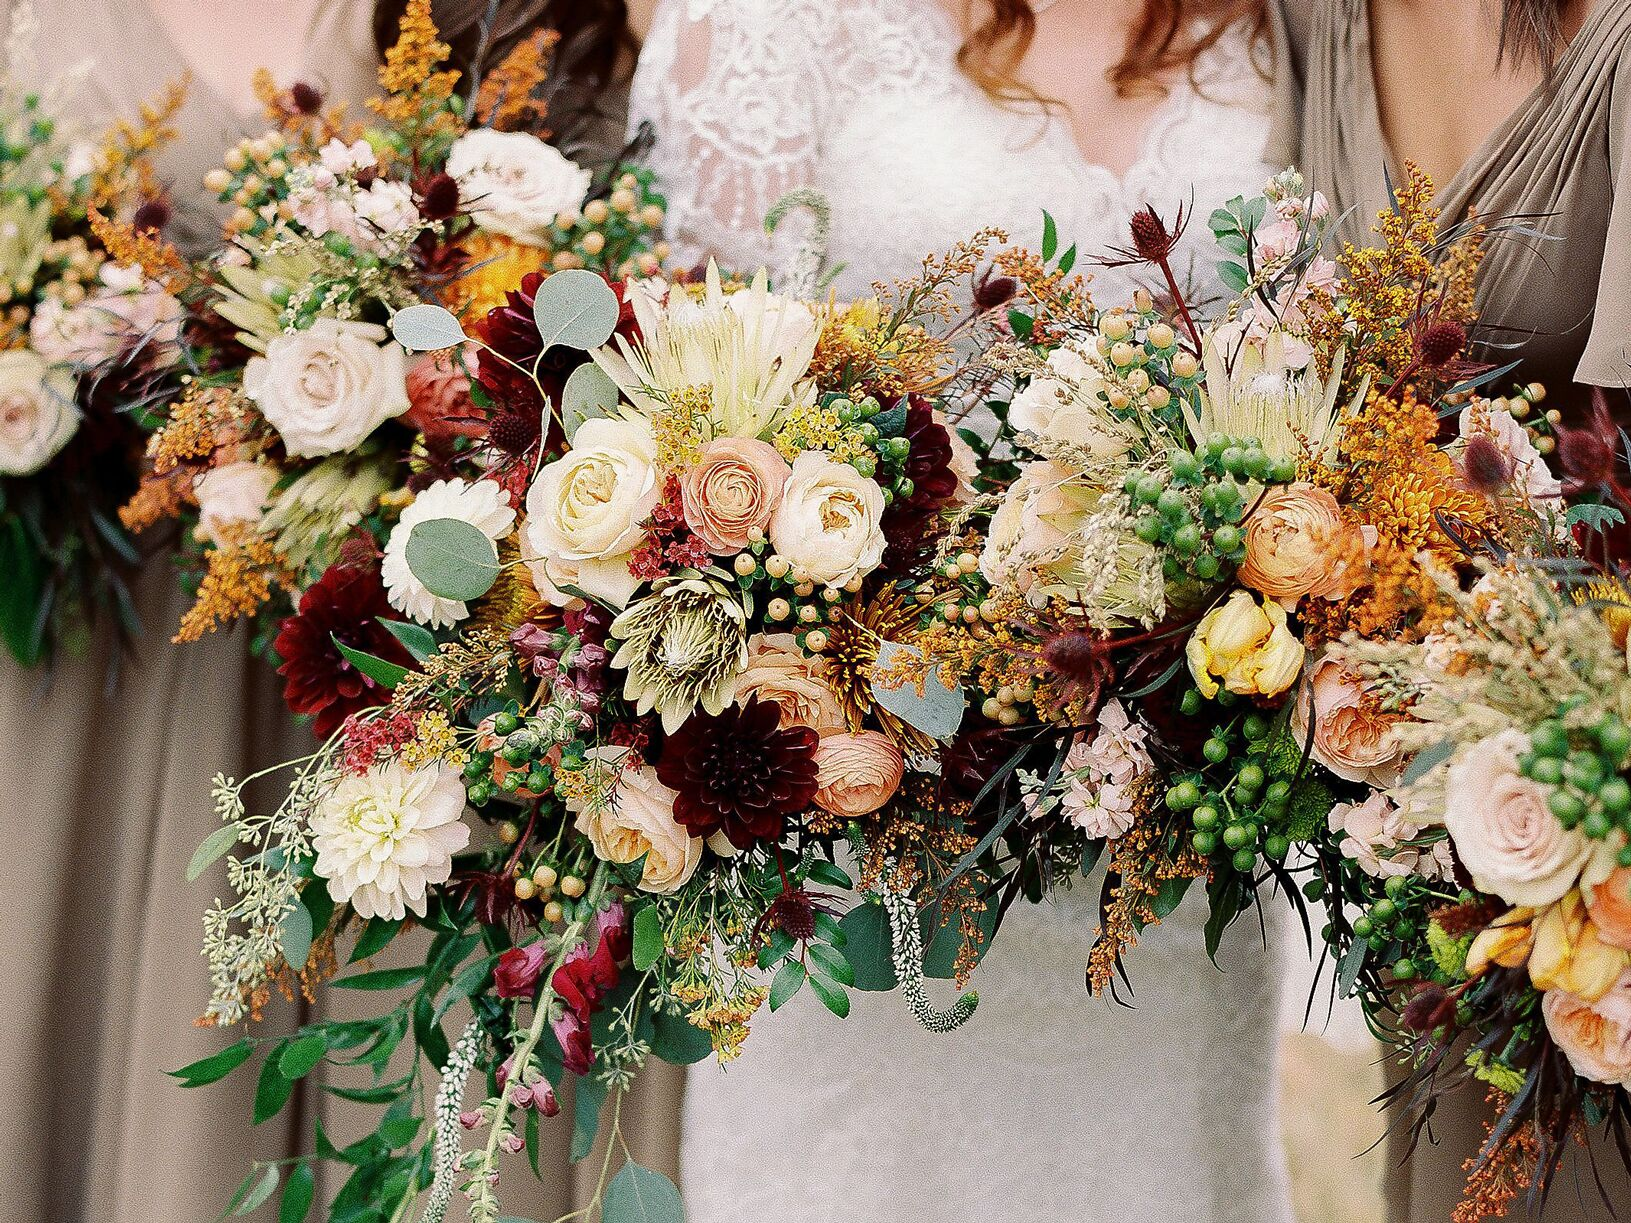 ideas for you to choose orange narcissus wedding flowers 8 - Ideas for You to Choose Orange Narcissus Wedding Flowers